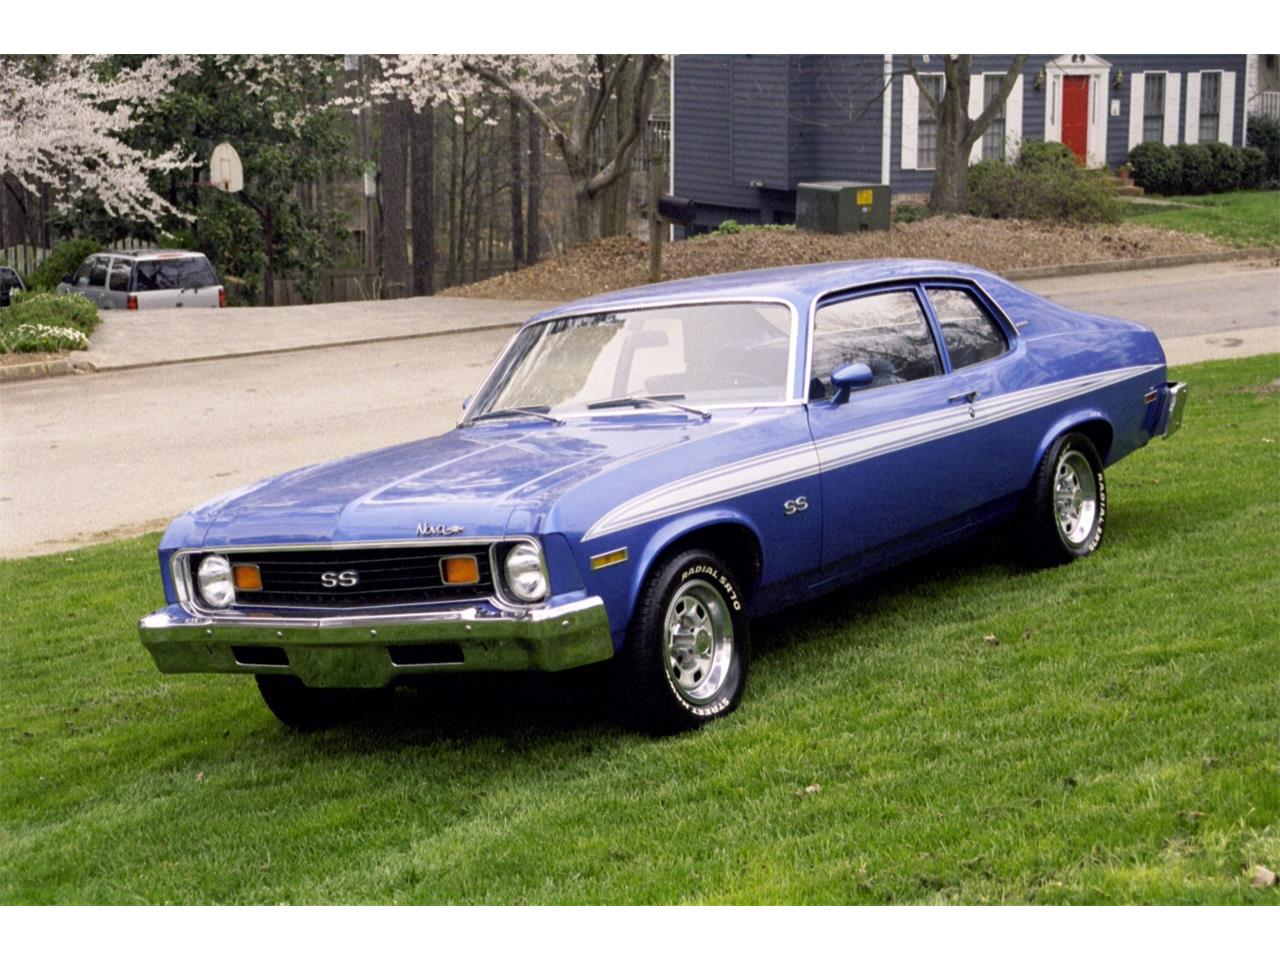 Large Picture of '73 Chevrolet Nova SS  located in Georgia Offered by a Private Seller - LCH6